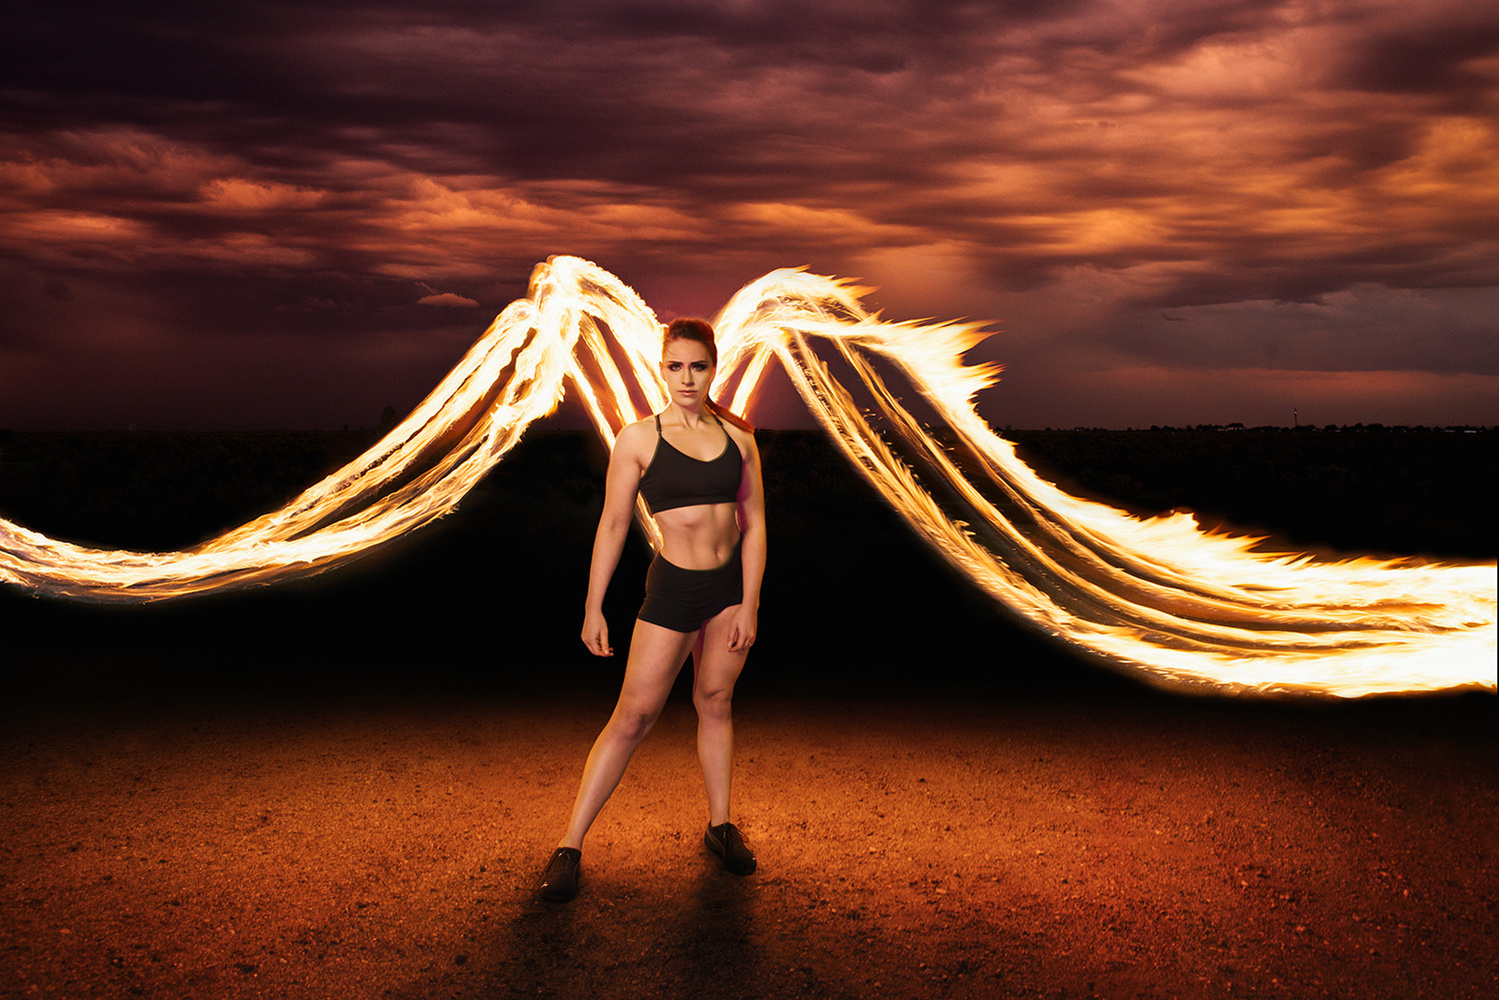 Fire Wings by Aaron Anderson